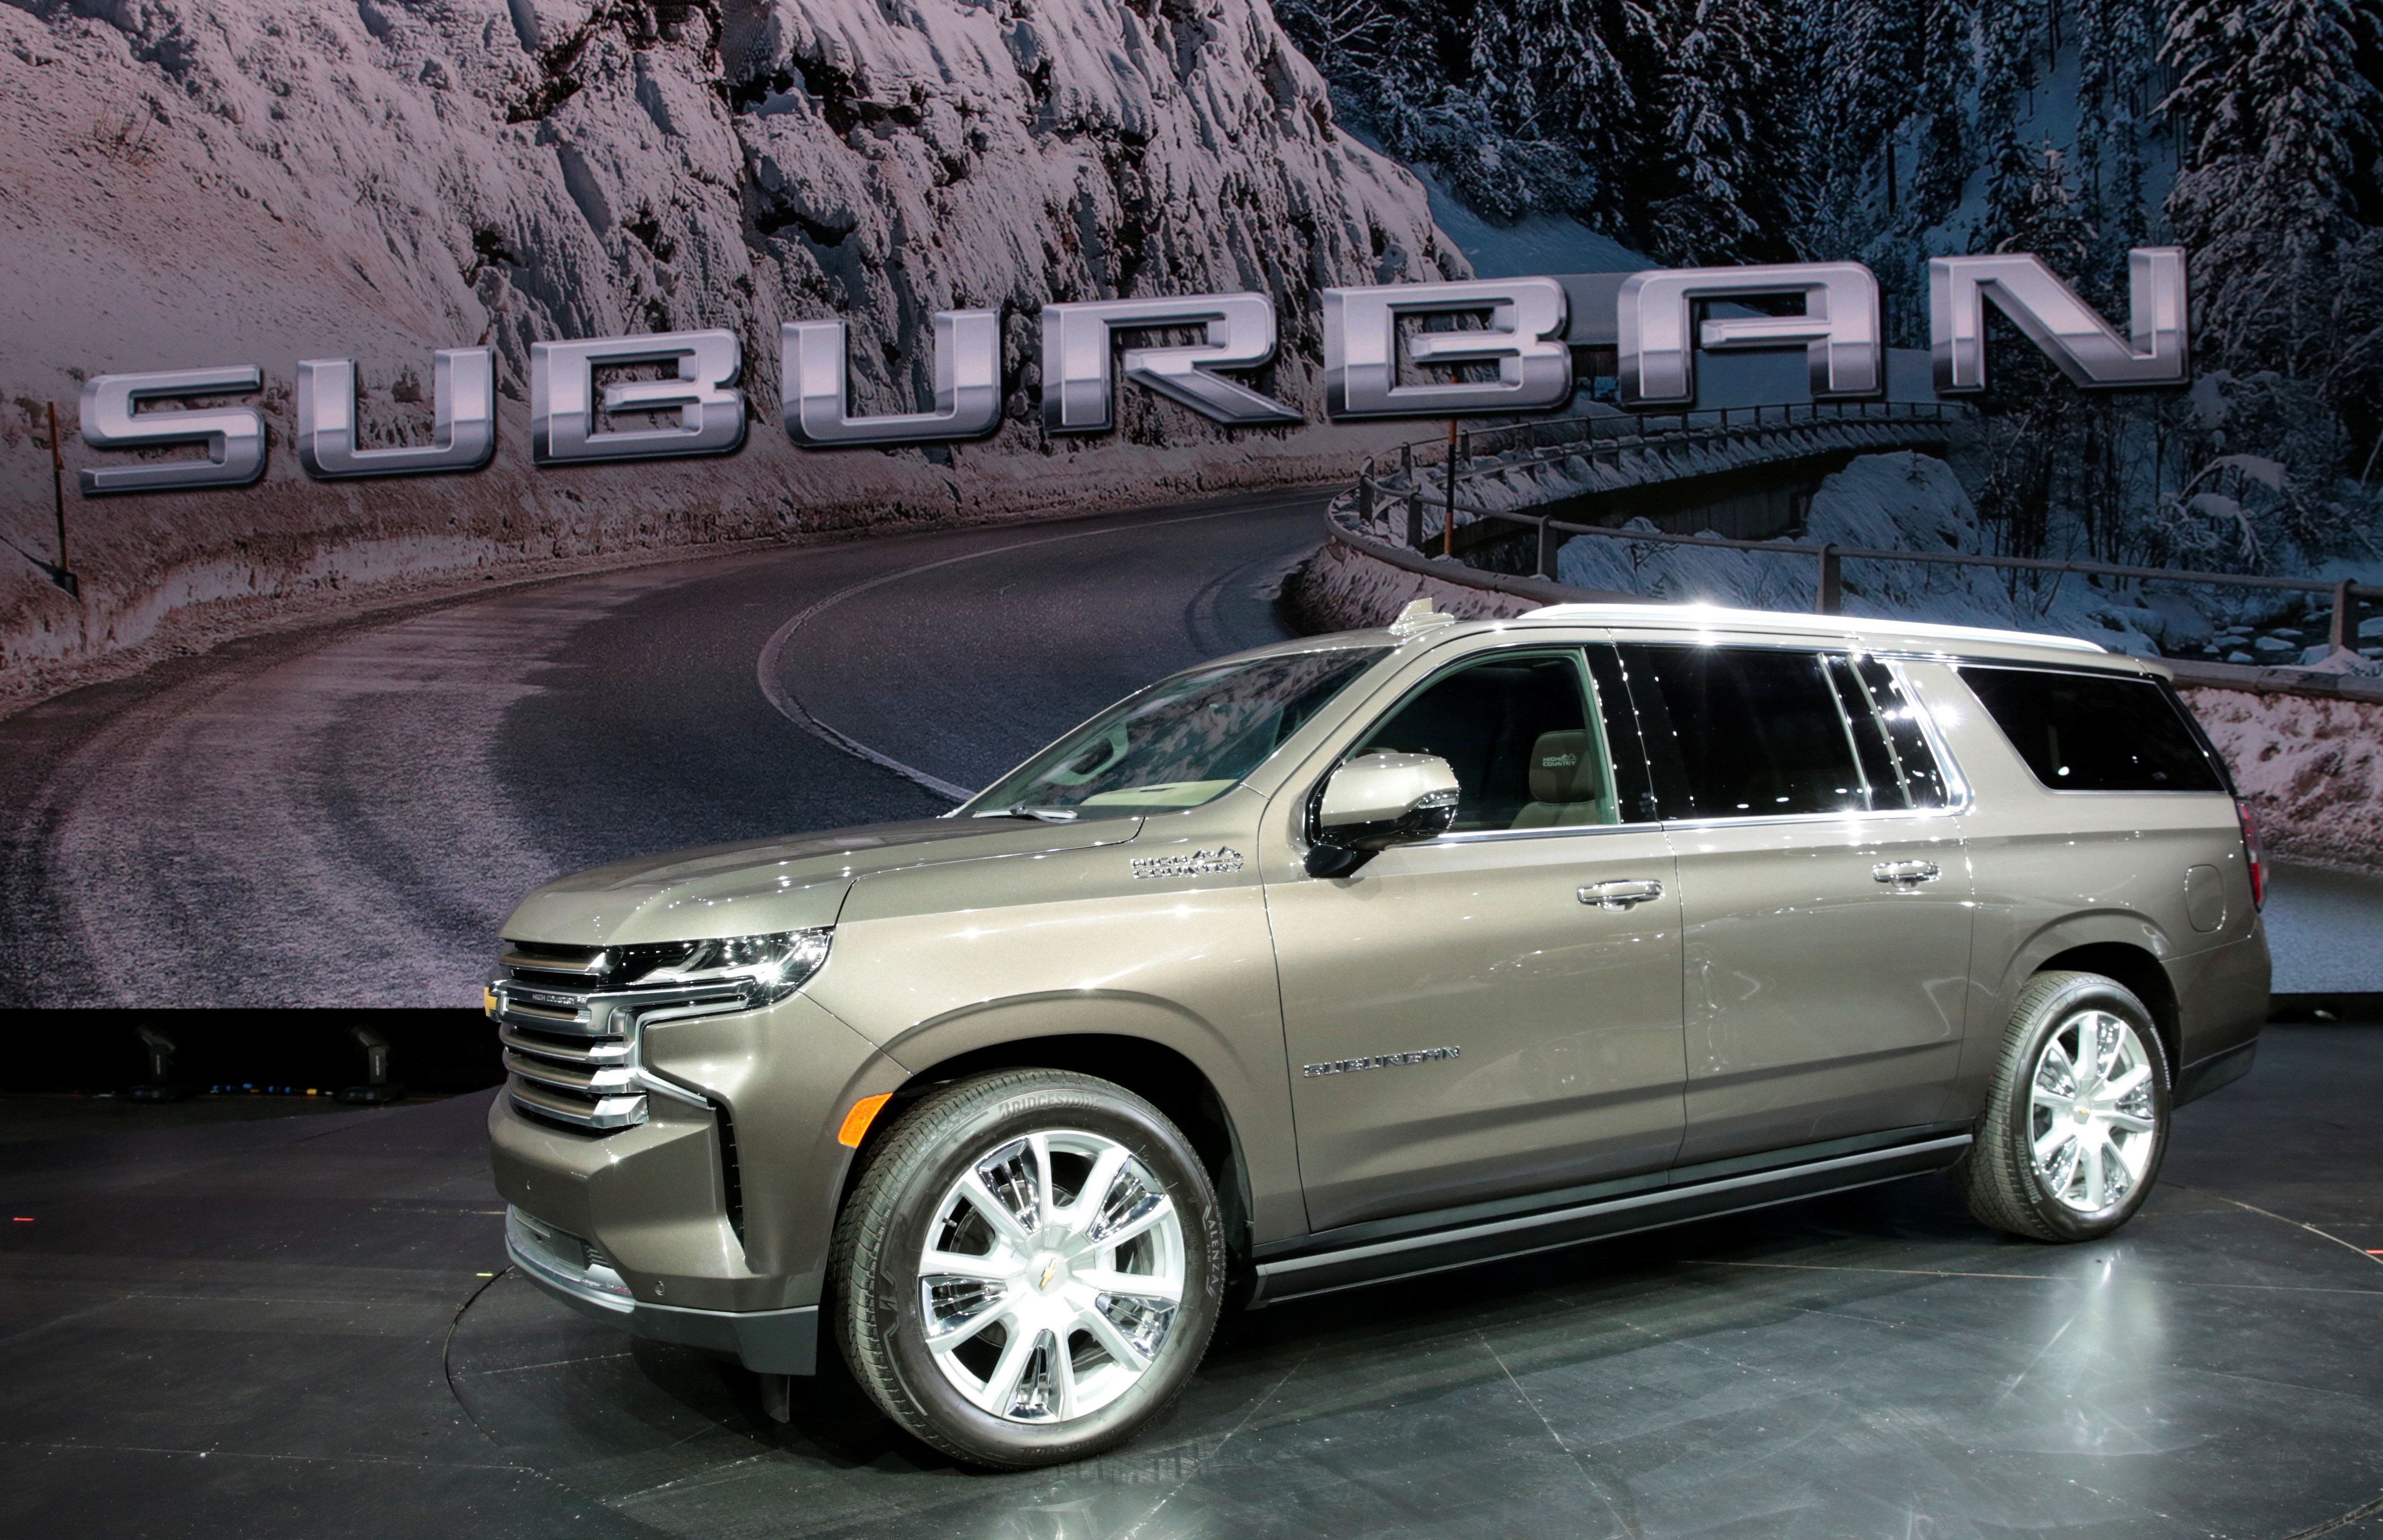 The new Chevy Suburban will grow by 1.3 inches to 225.7 inches long - making it one of the longest passenger vehicles on the market (REUTERS)